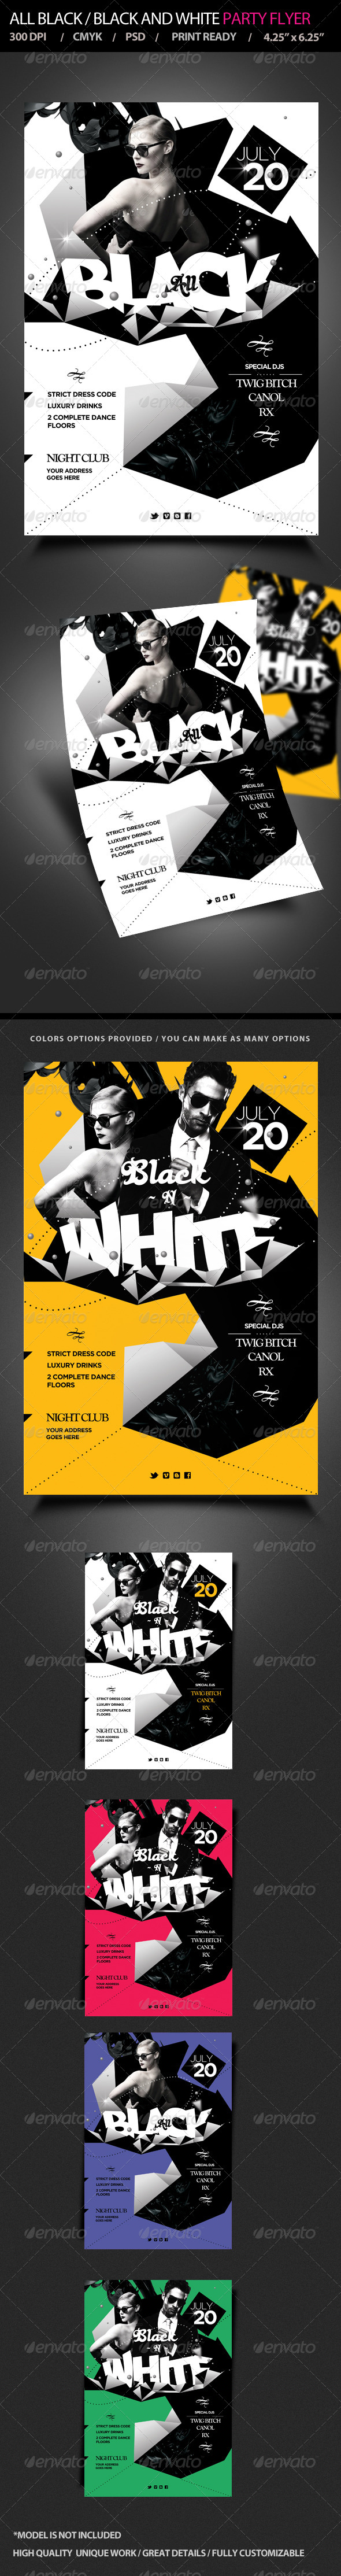 GraphicRiver All Black Black and White Party Flyer 5157776